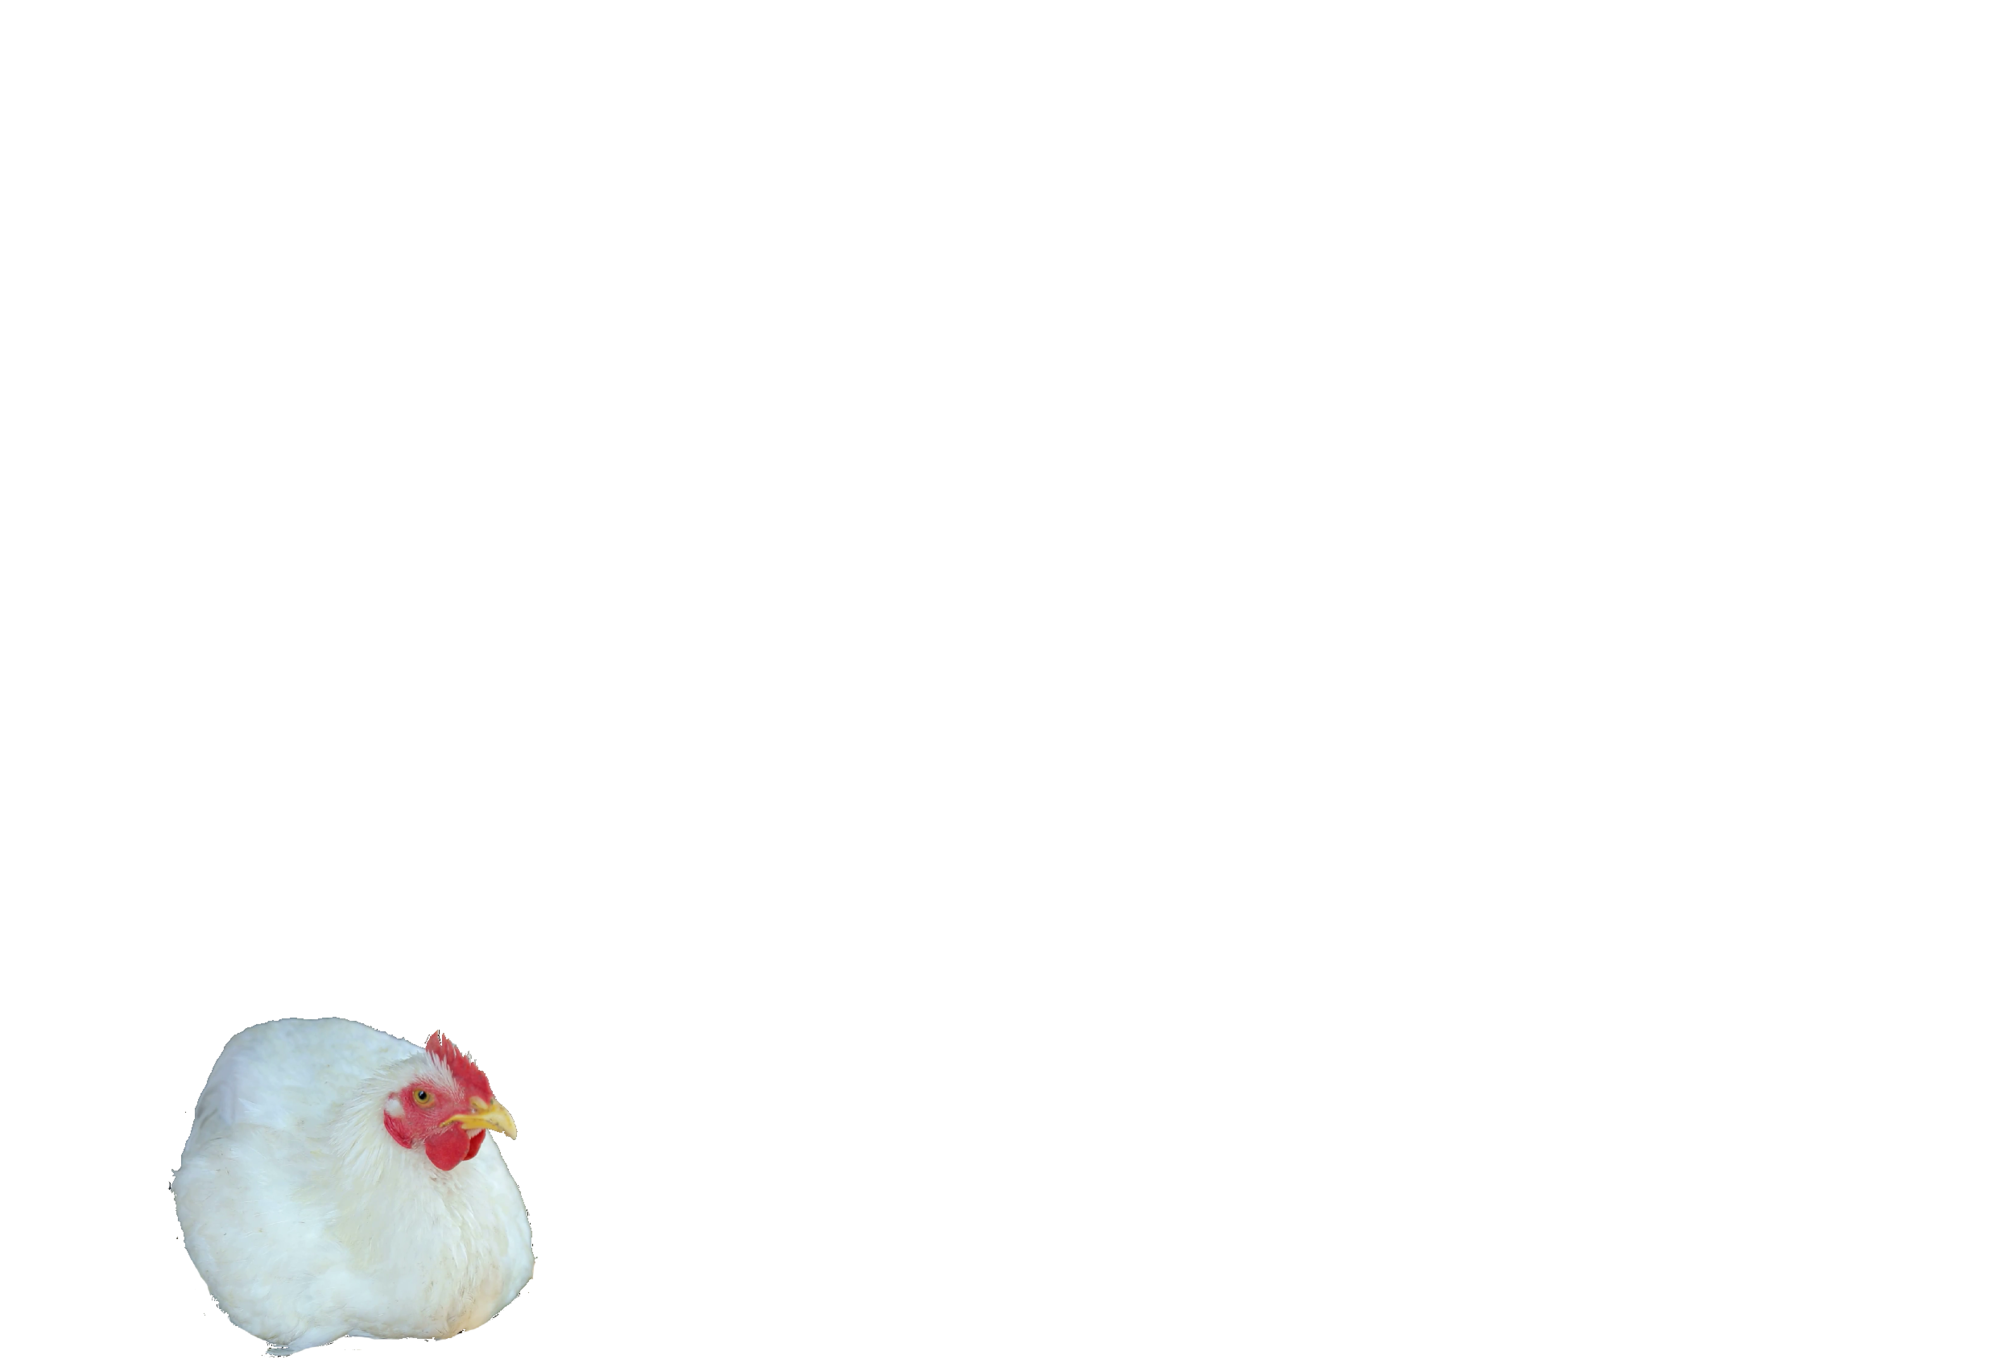 videoblocks-white-chicken-chicken-sitting_b_6yij6l2e_thumbnail-full01.png